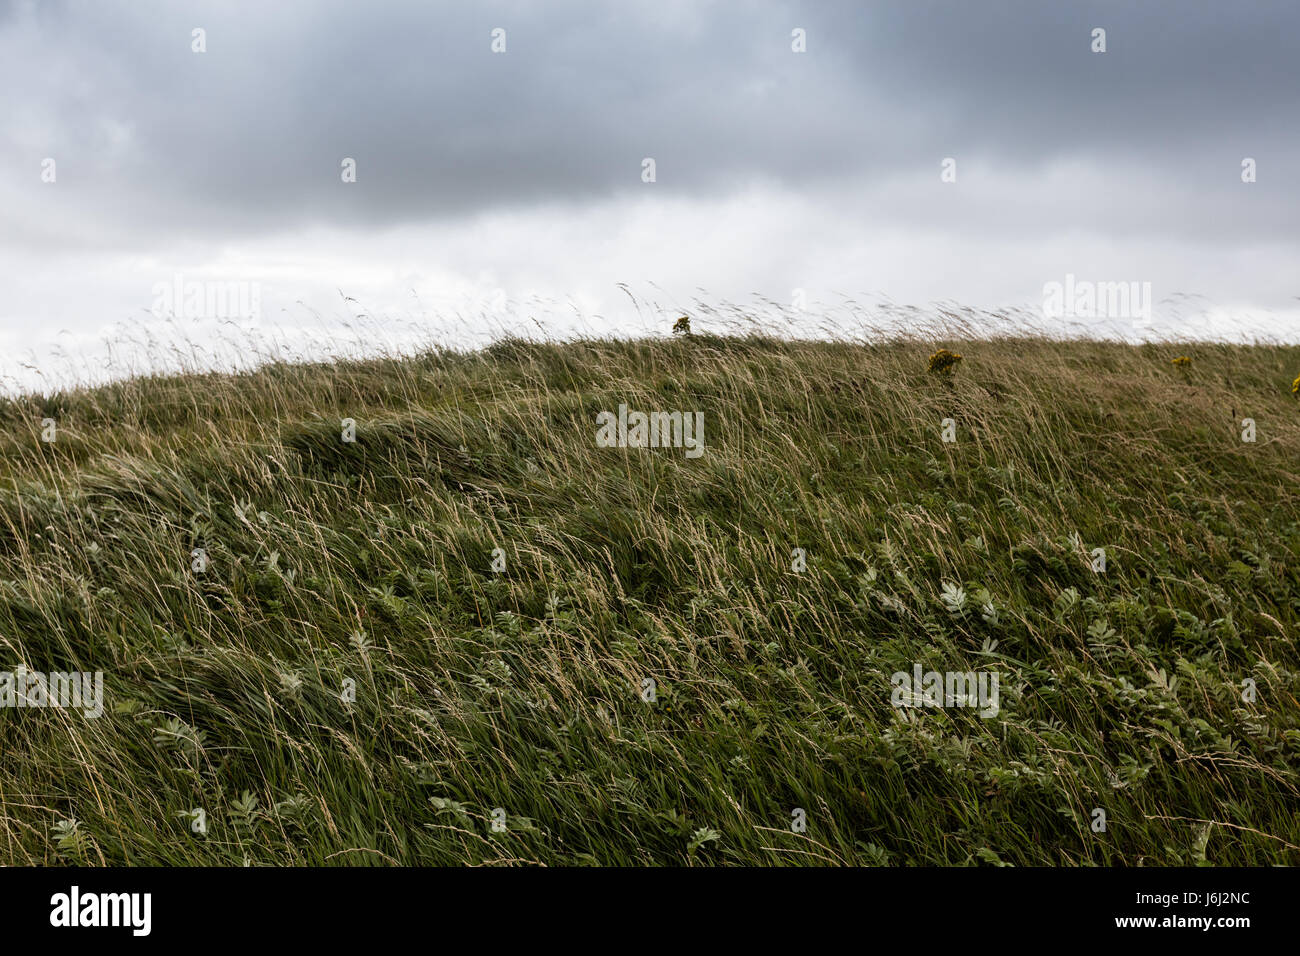 Meadows near the Cliffs of Moher in Ireland - Stock Image